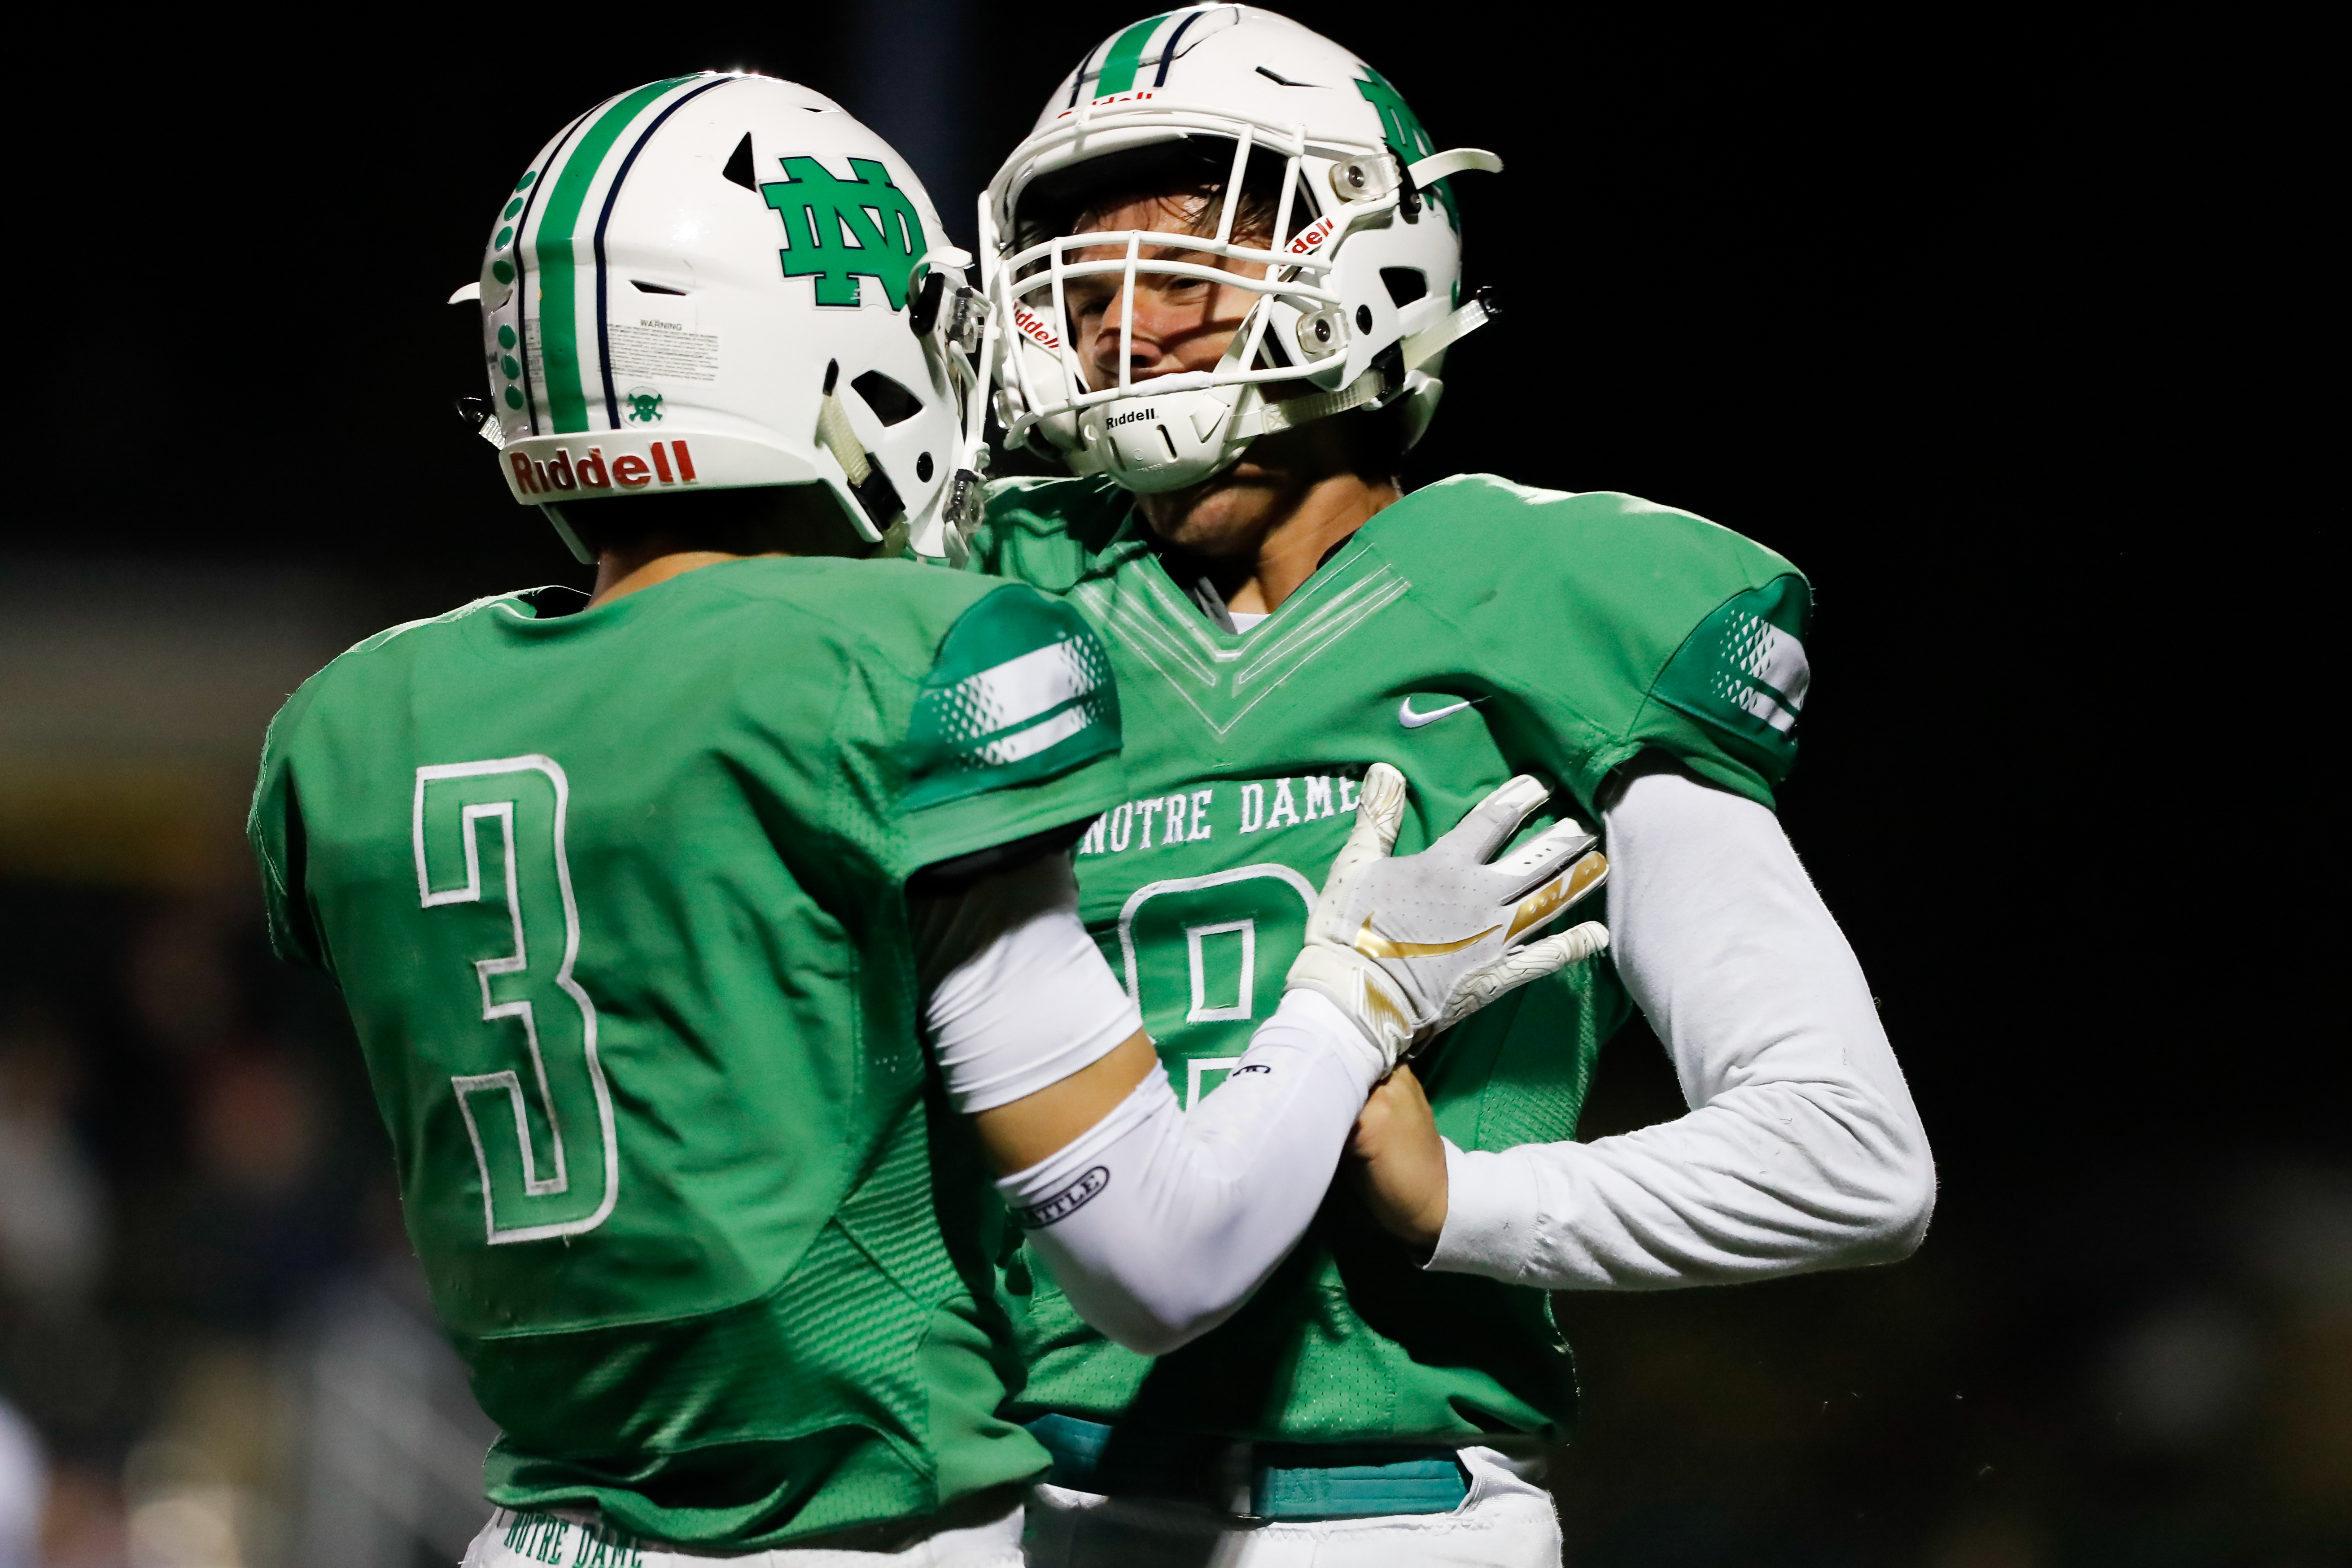 Notre Dame's Jordan Geroulis (8) reacts with Nick Giamarusti (3) during the game against Nazareth.